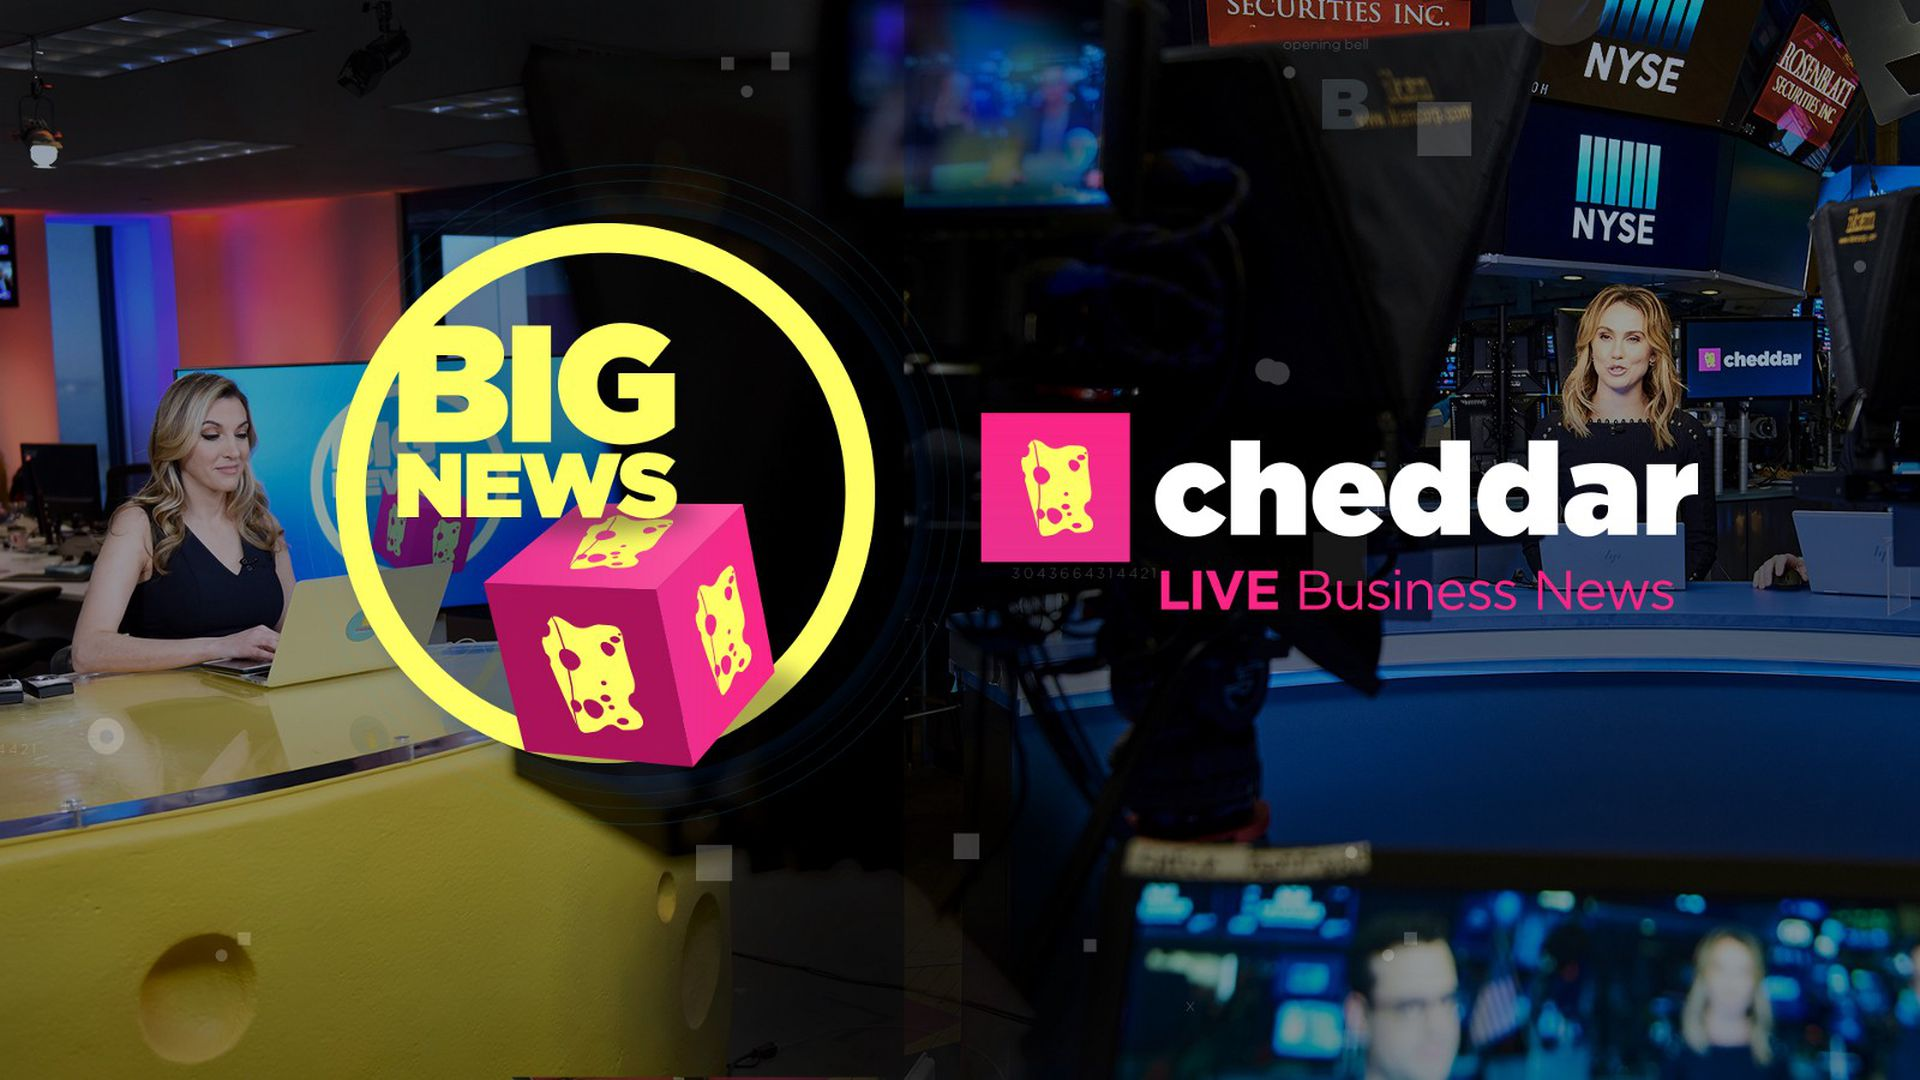 Cheddar Feature Image